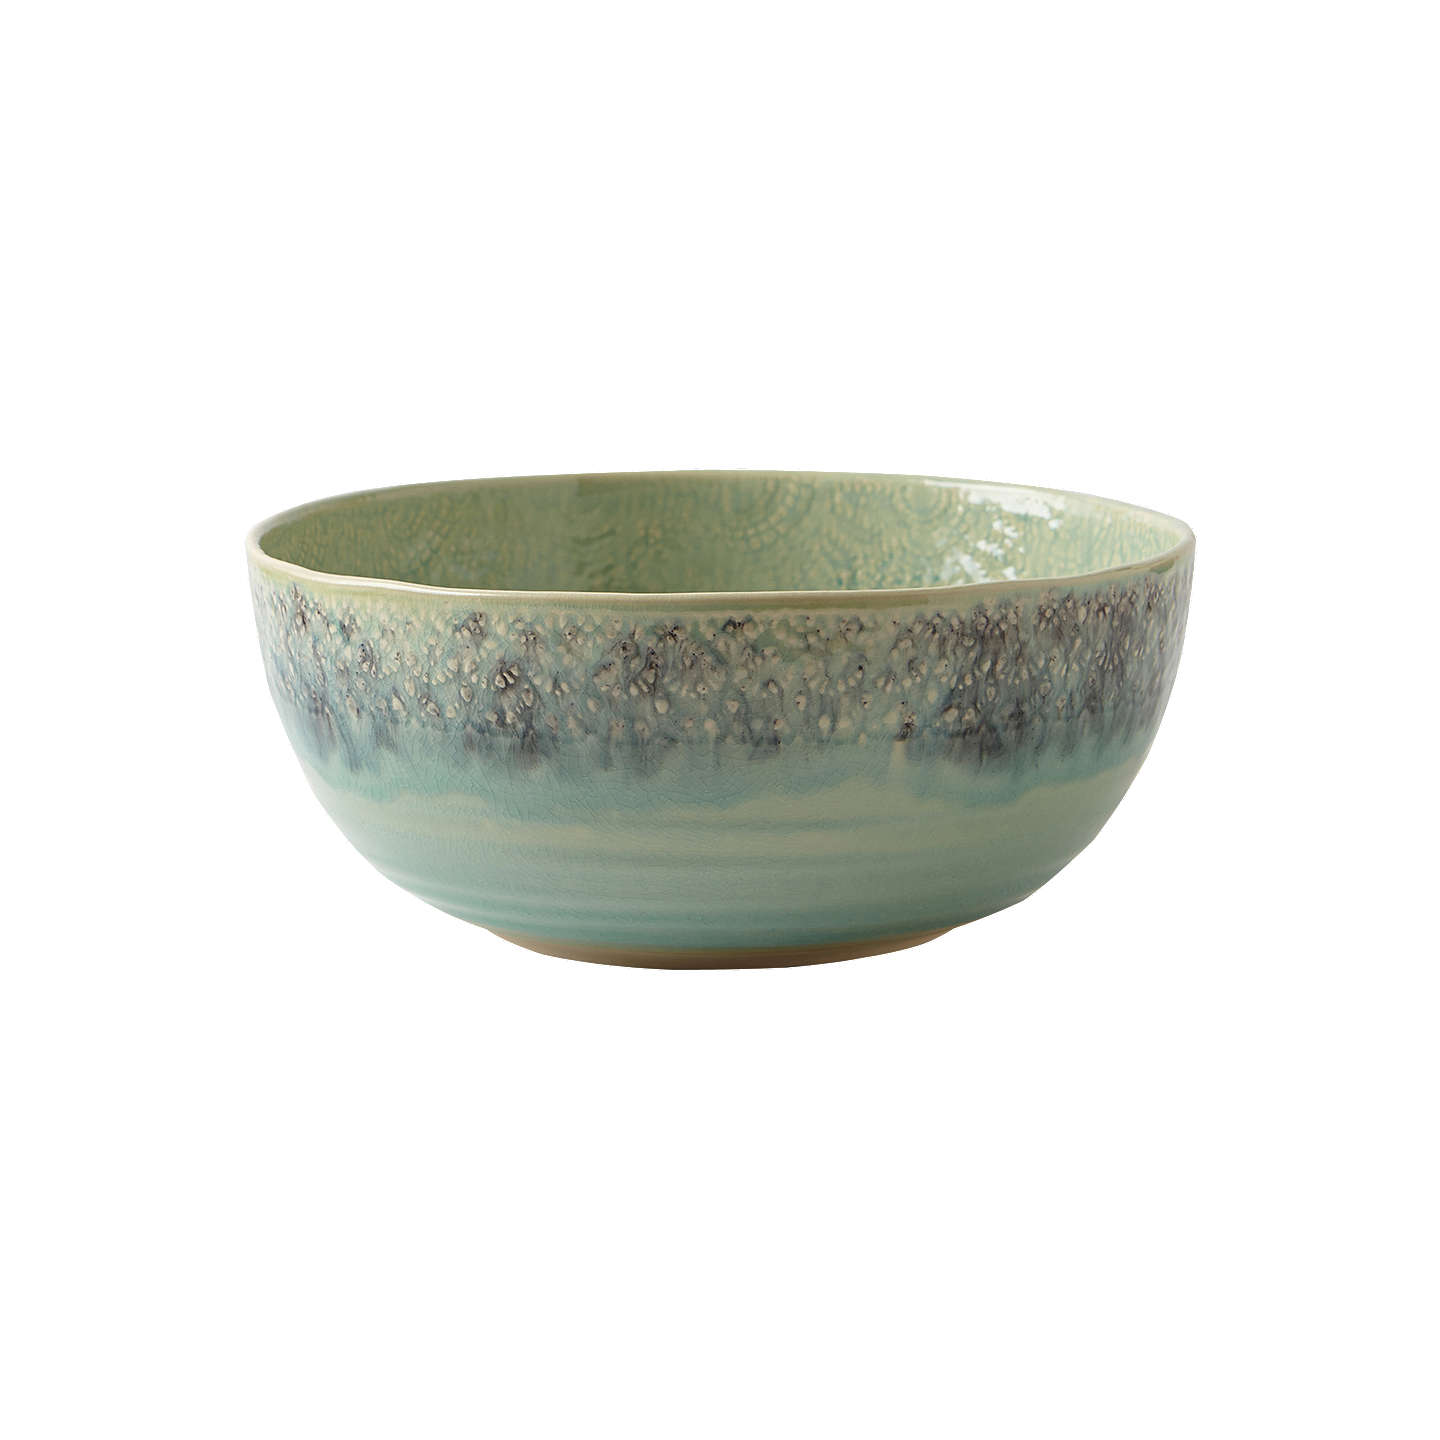 Famous Anthropologie Old Havana Serving Bowl, Turquoise, Dia.32.3cm at  BB67